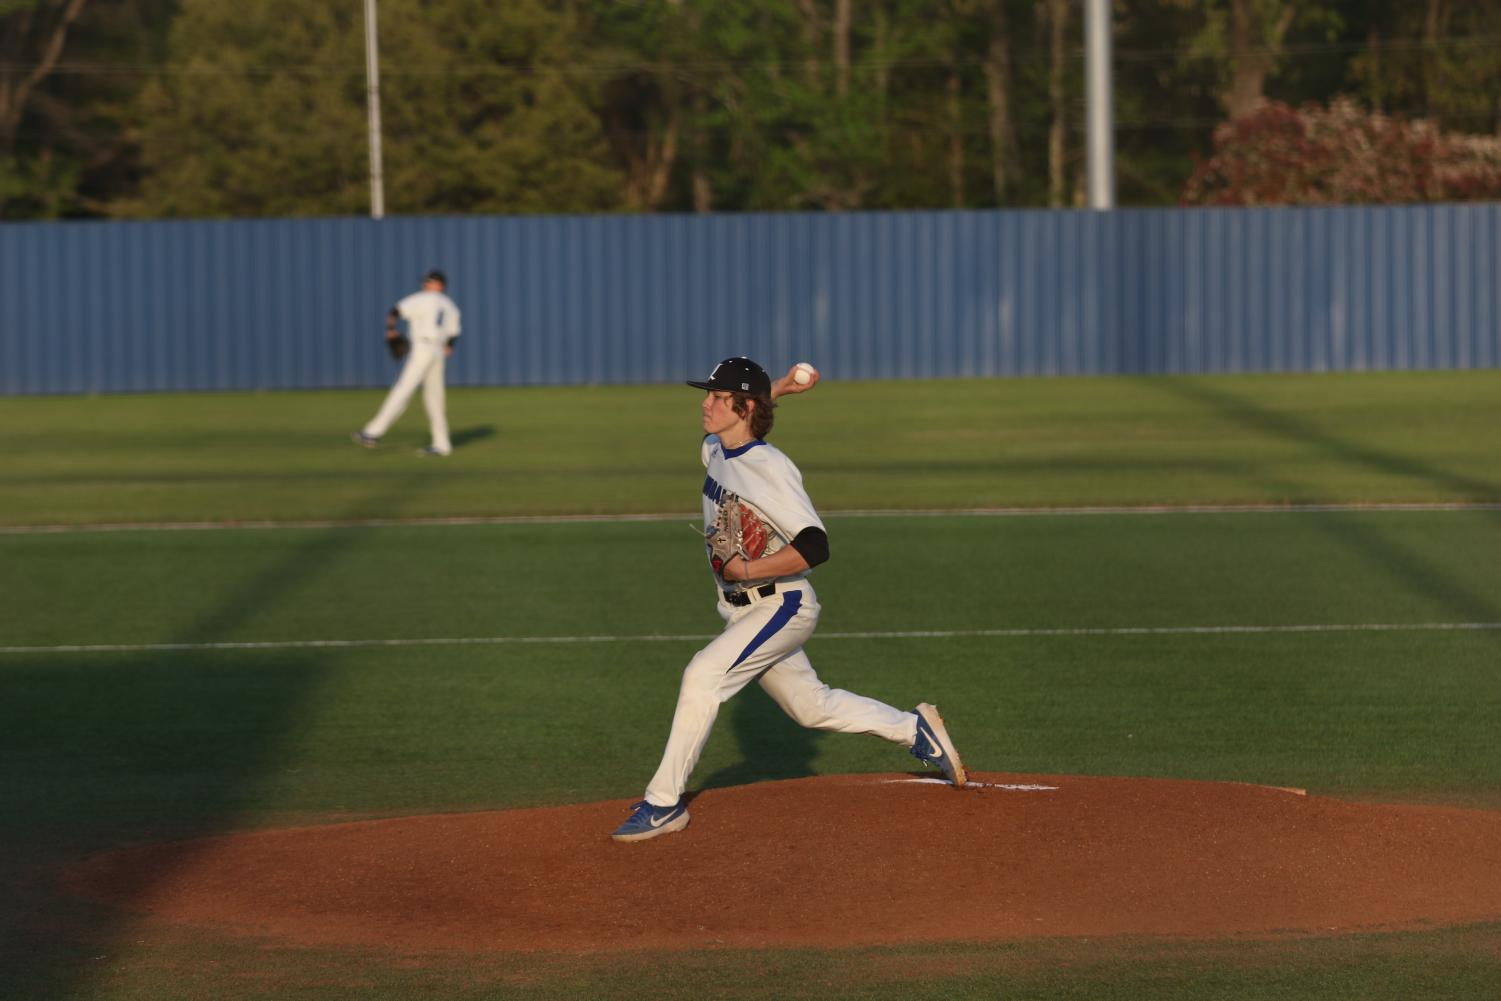 Senior Landon Chaney pitches the ball to a Sulphur Springs batter. The Eagles varsity team won the game 4-1 and also beat Sulphur Springs three games to none in their district series.